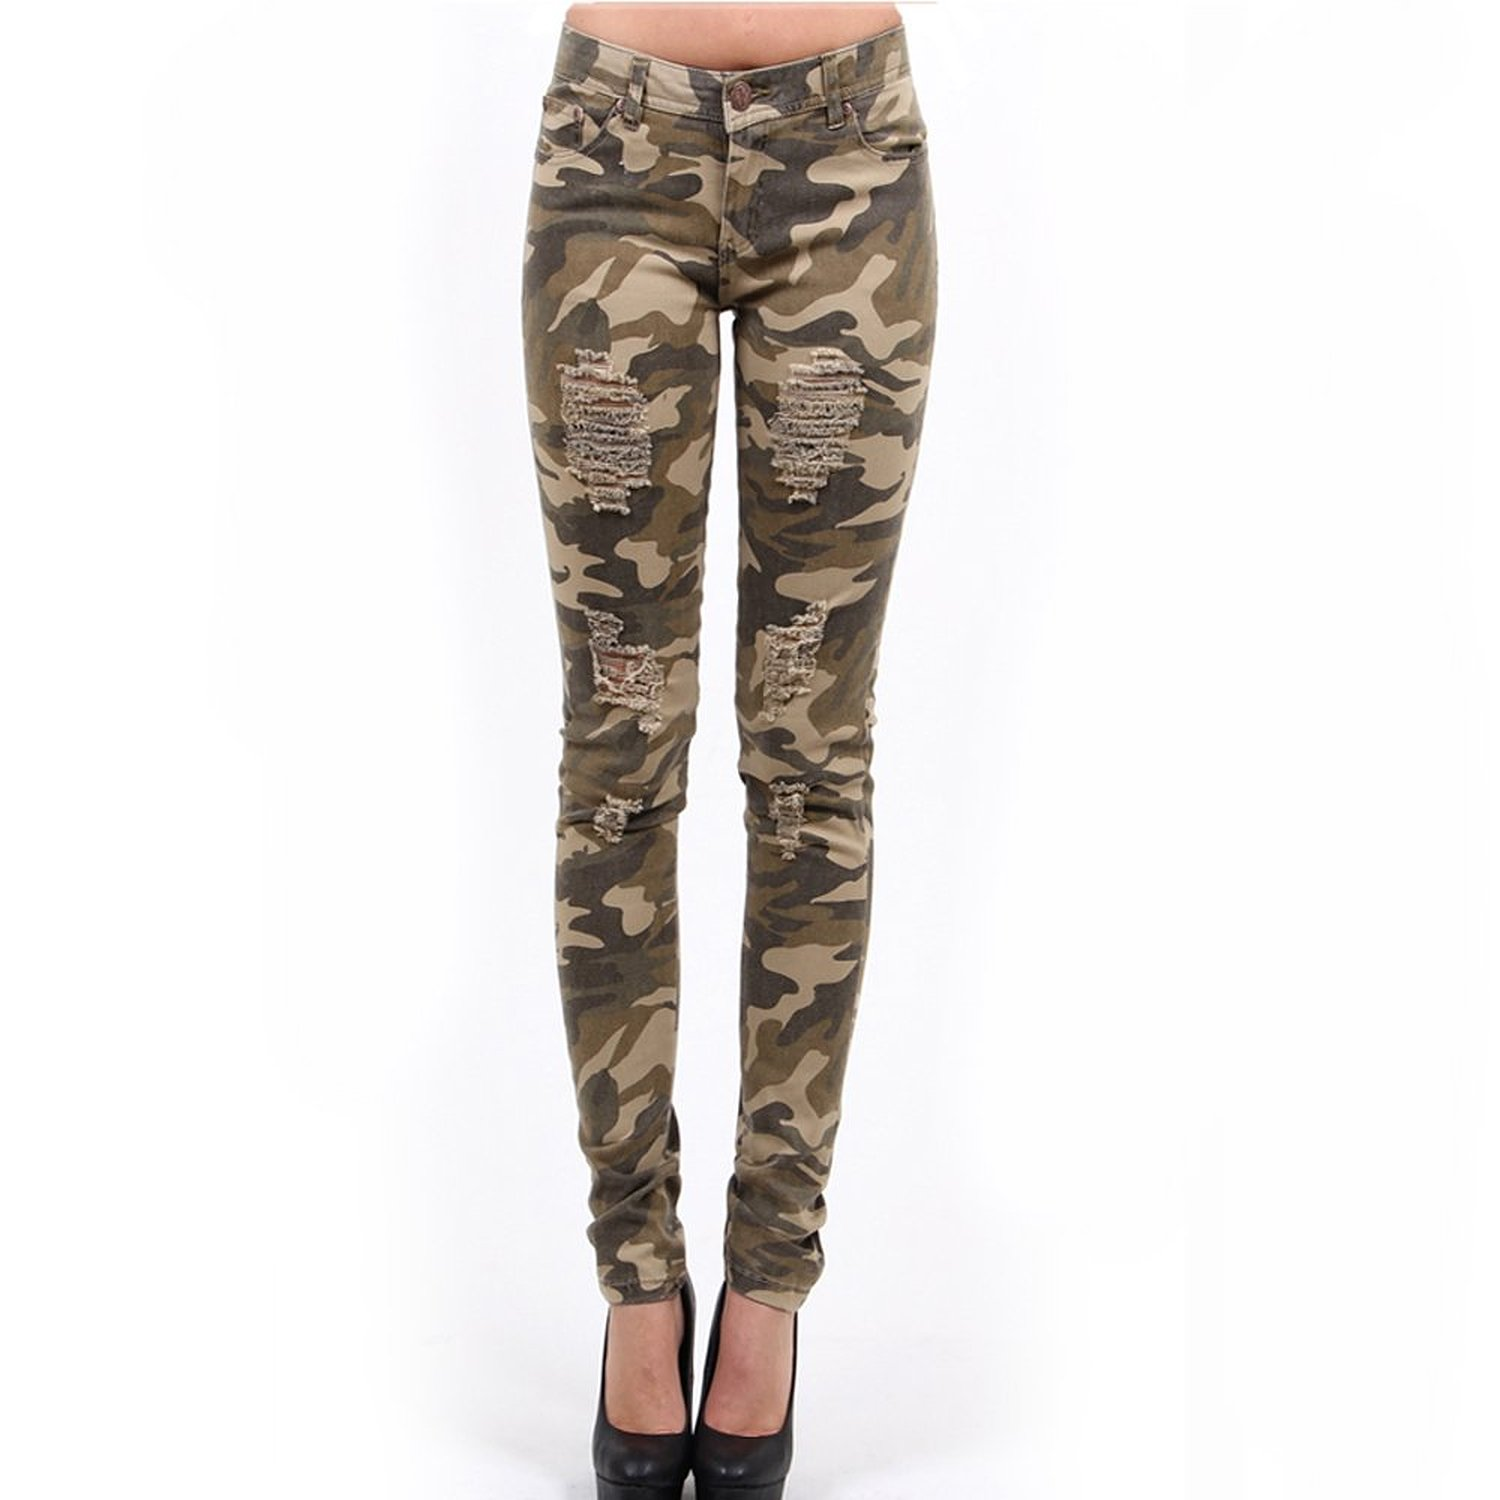 Unique Women S Camo Pants Pictures To Pin On Pinterest